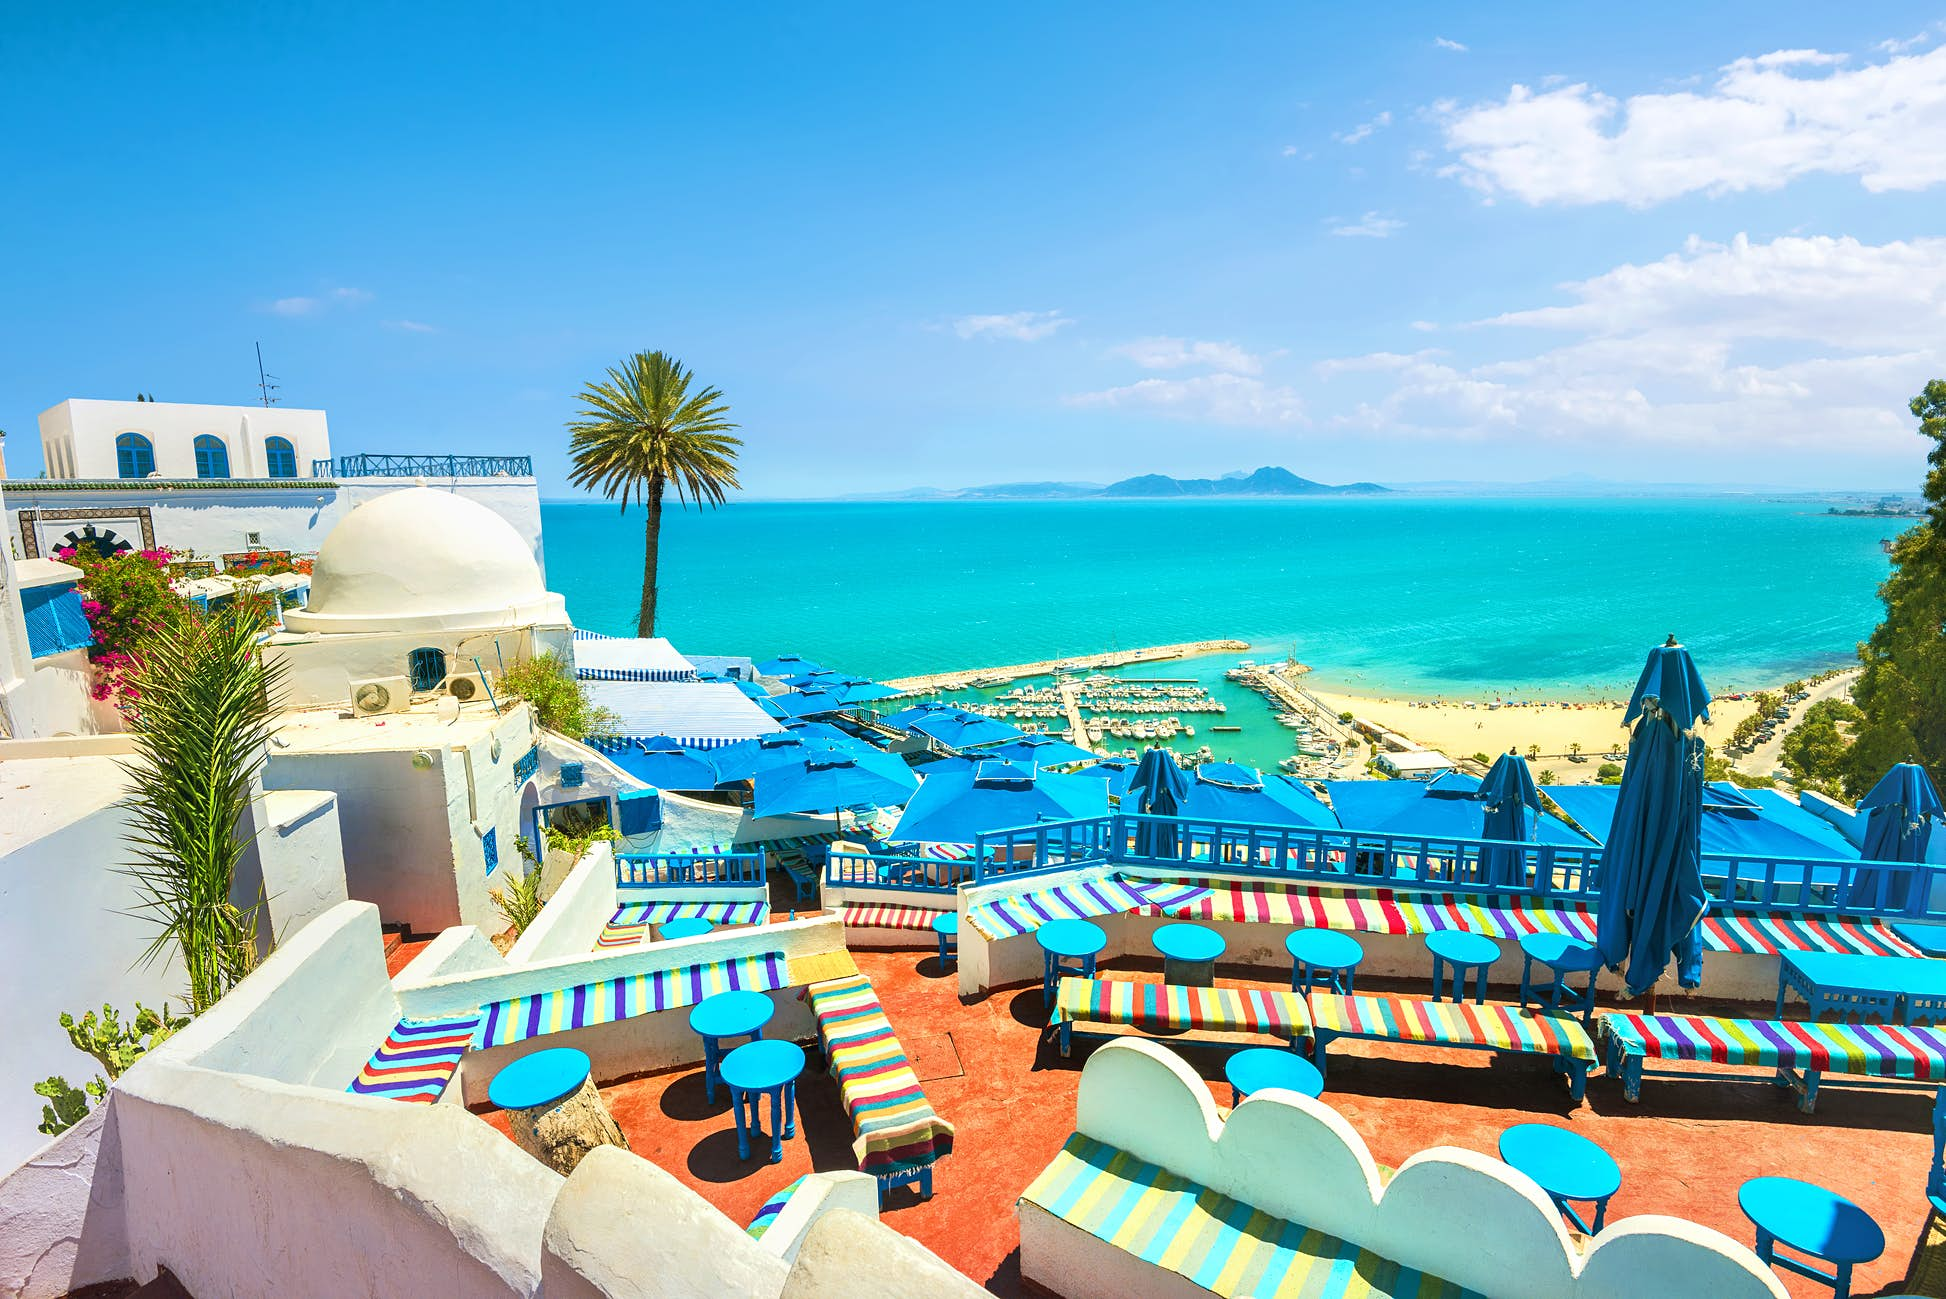 The white and blue coloured buildings of the seaside town, Sidi Bou Said © Valery Bareta / Shutterstock